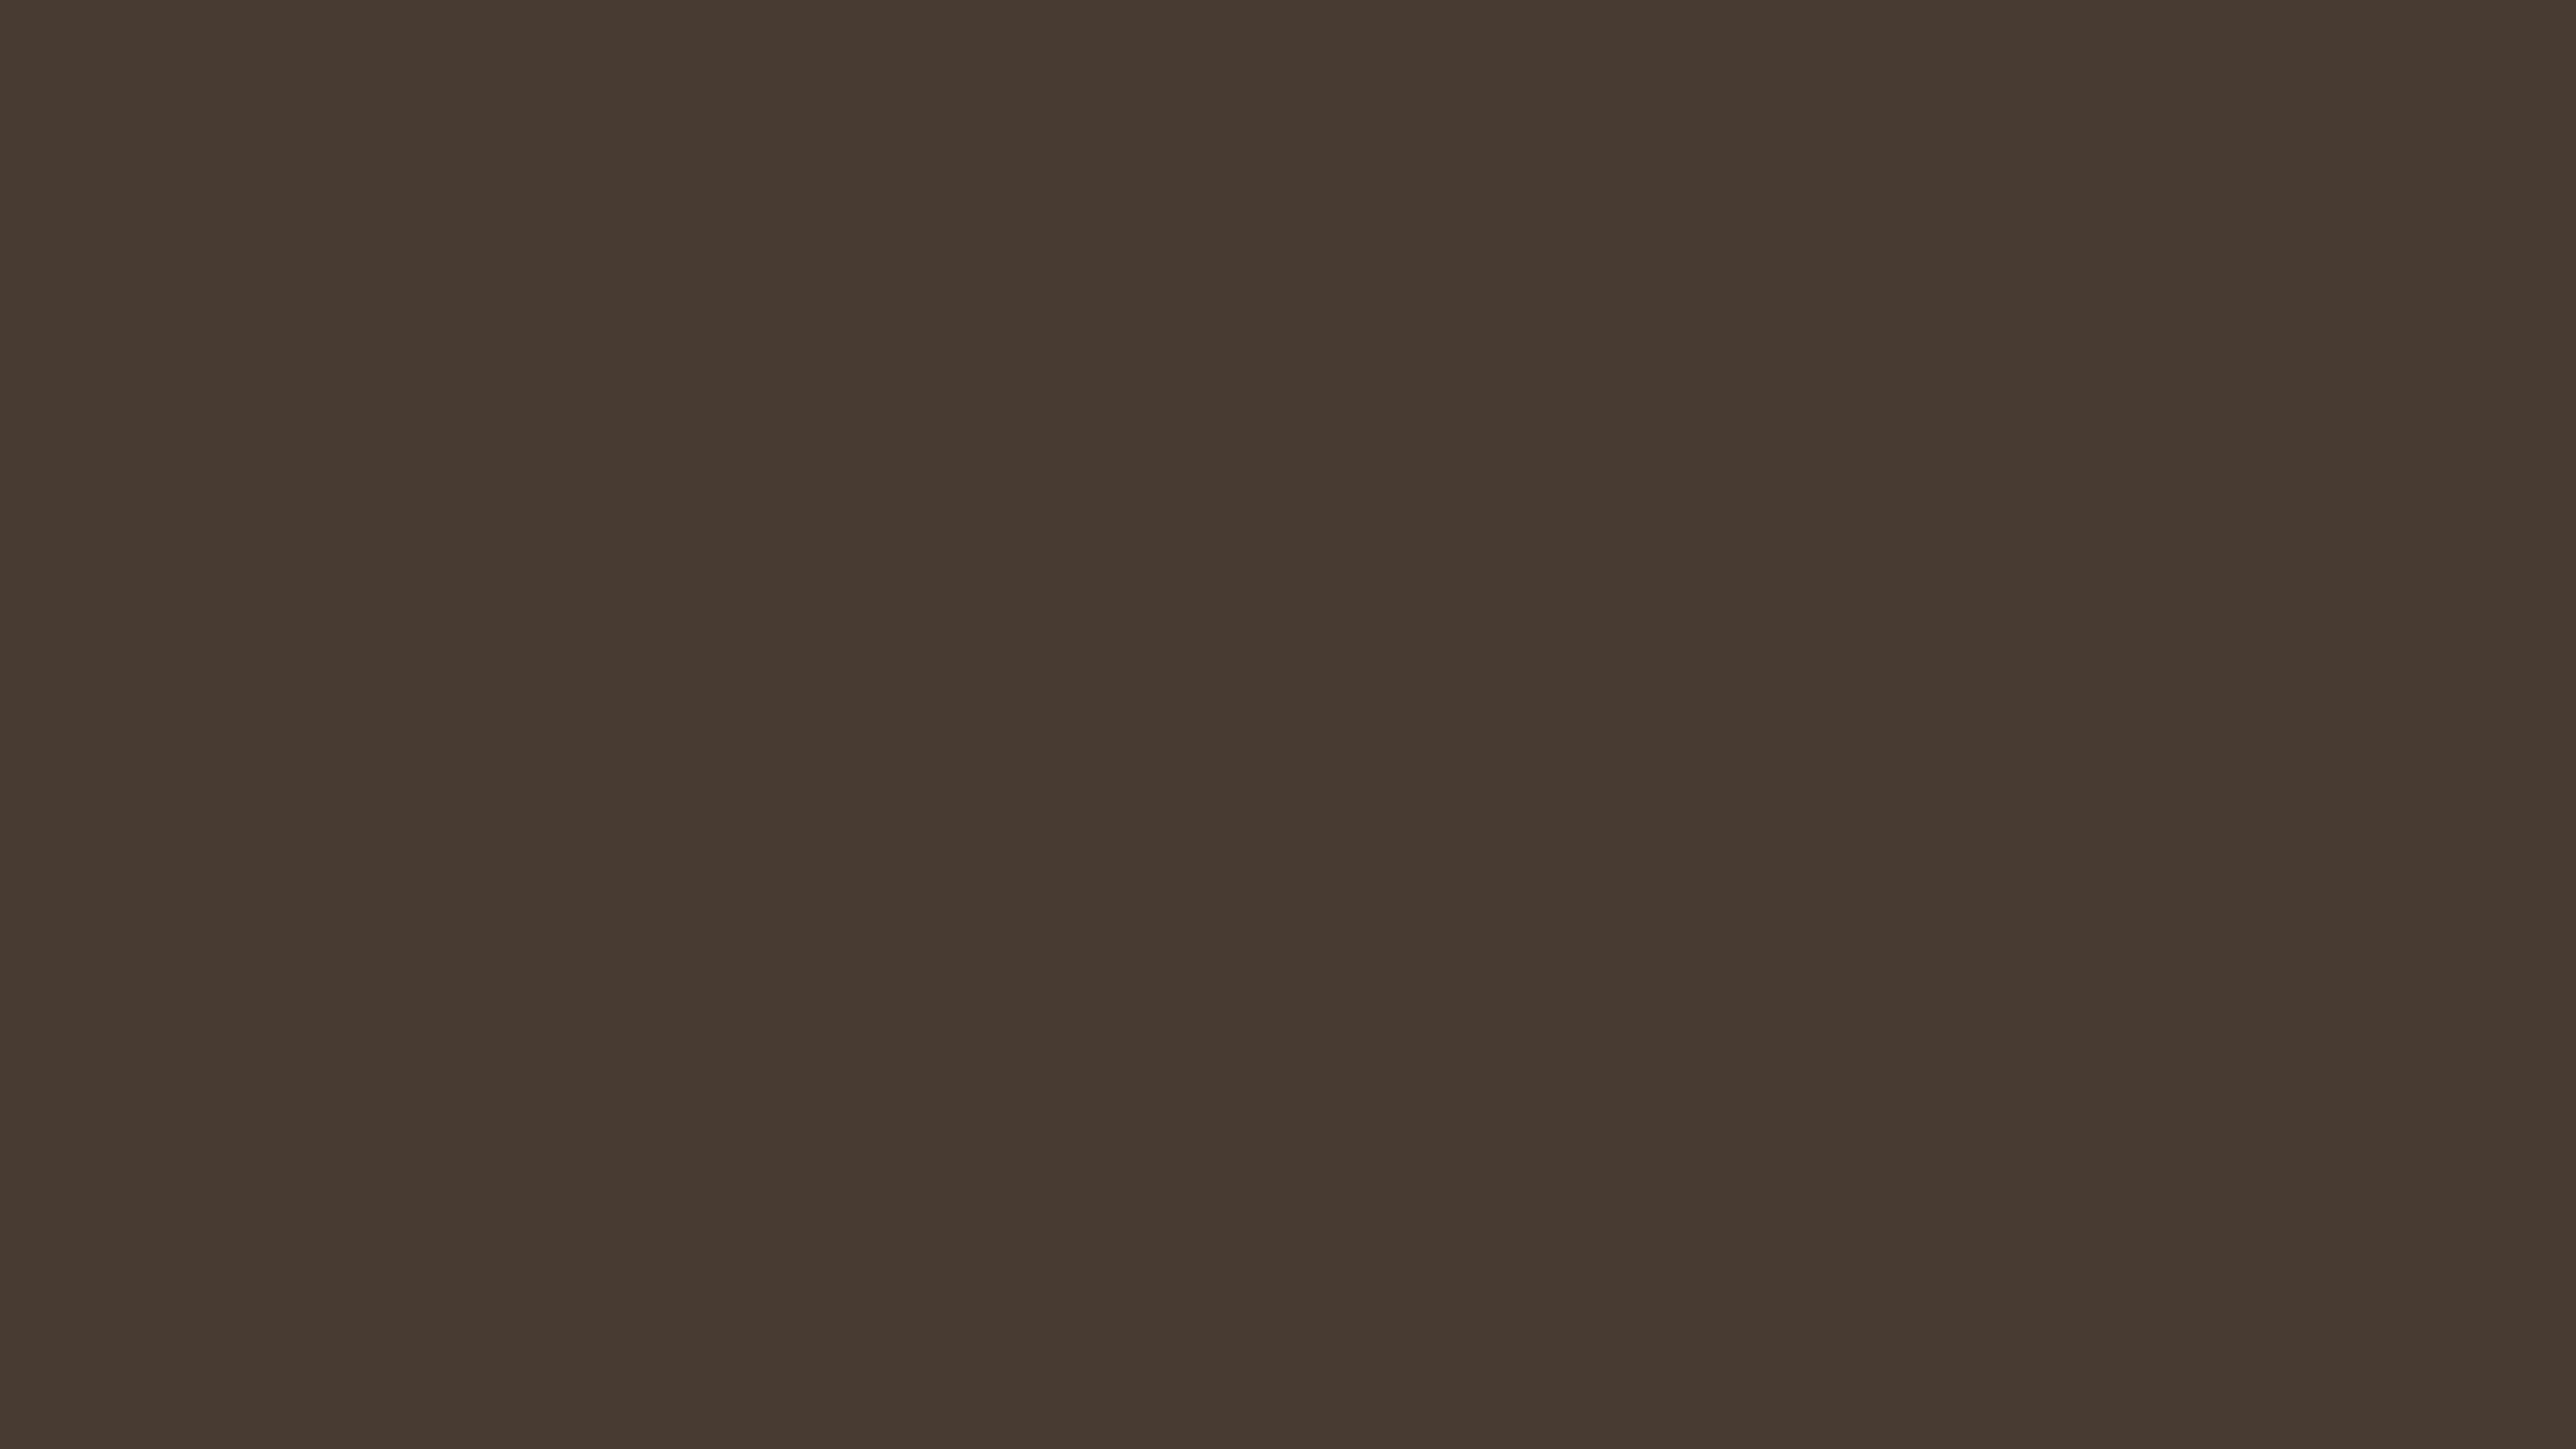 5120x2880 Dark Taupe Solid Color Background